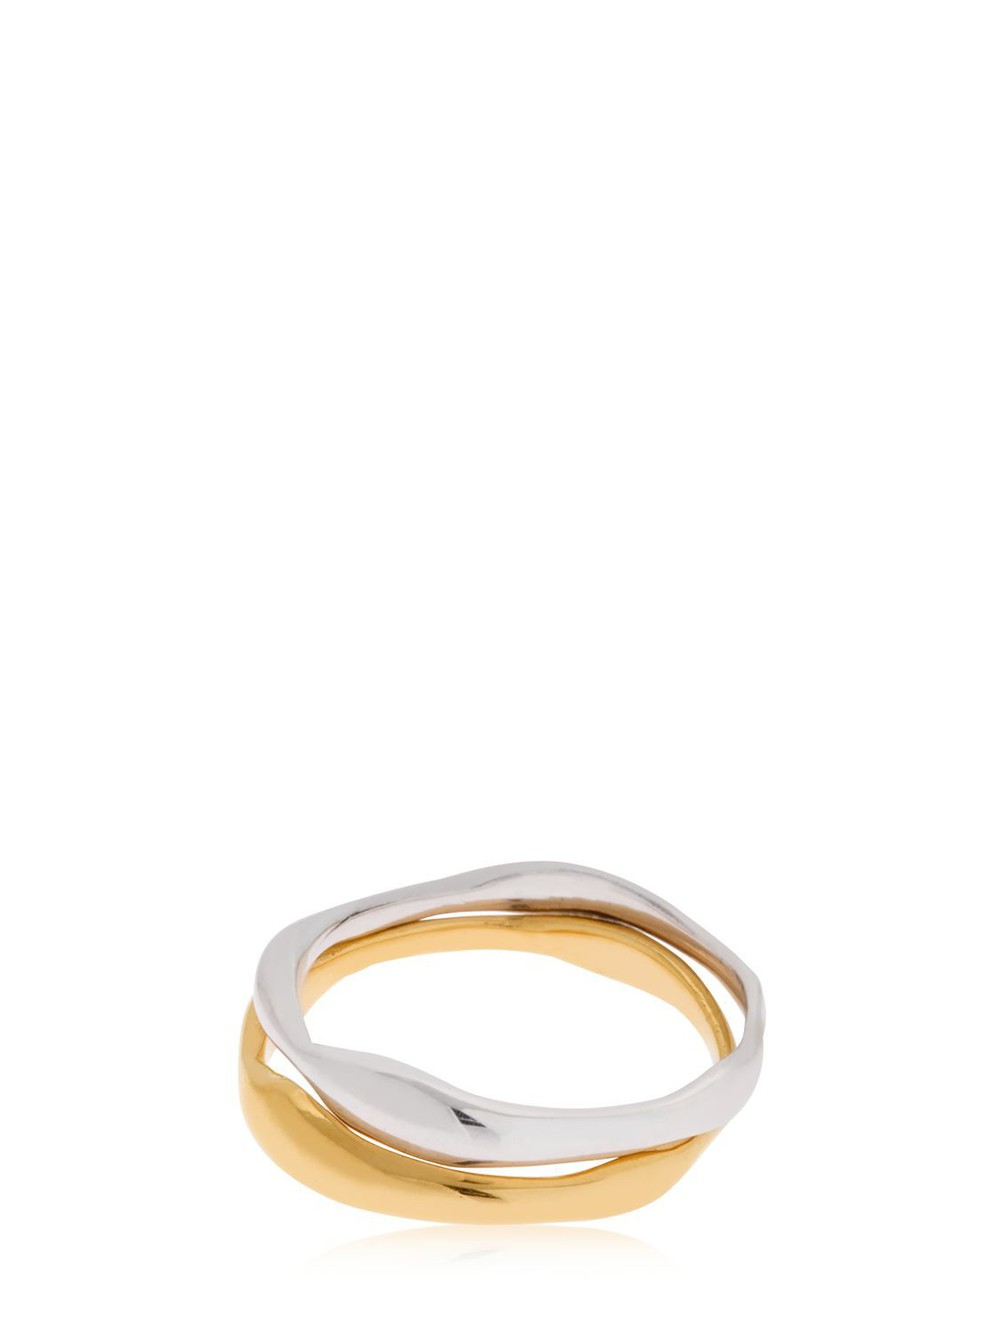 BAR JEWELLERY Ripple Set Of 2 Rings in gold / silver